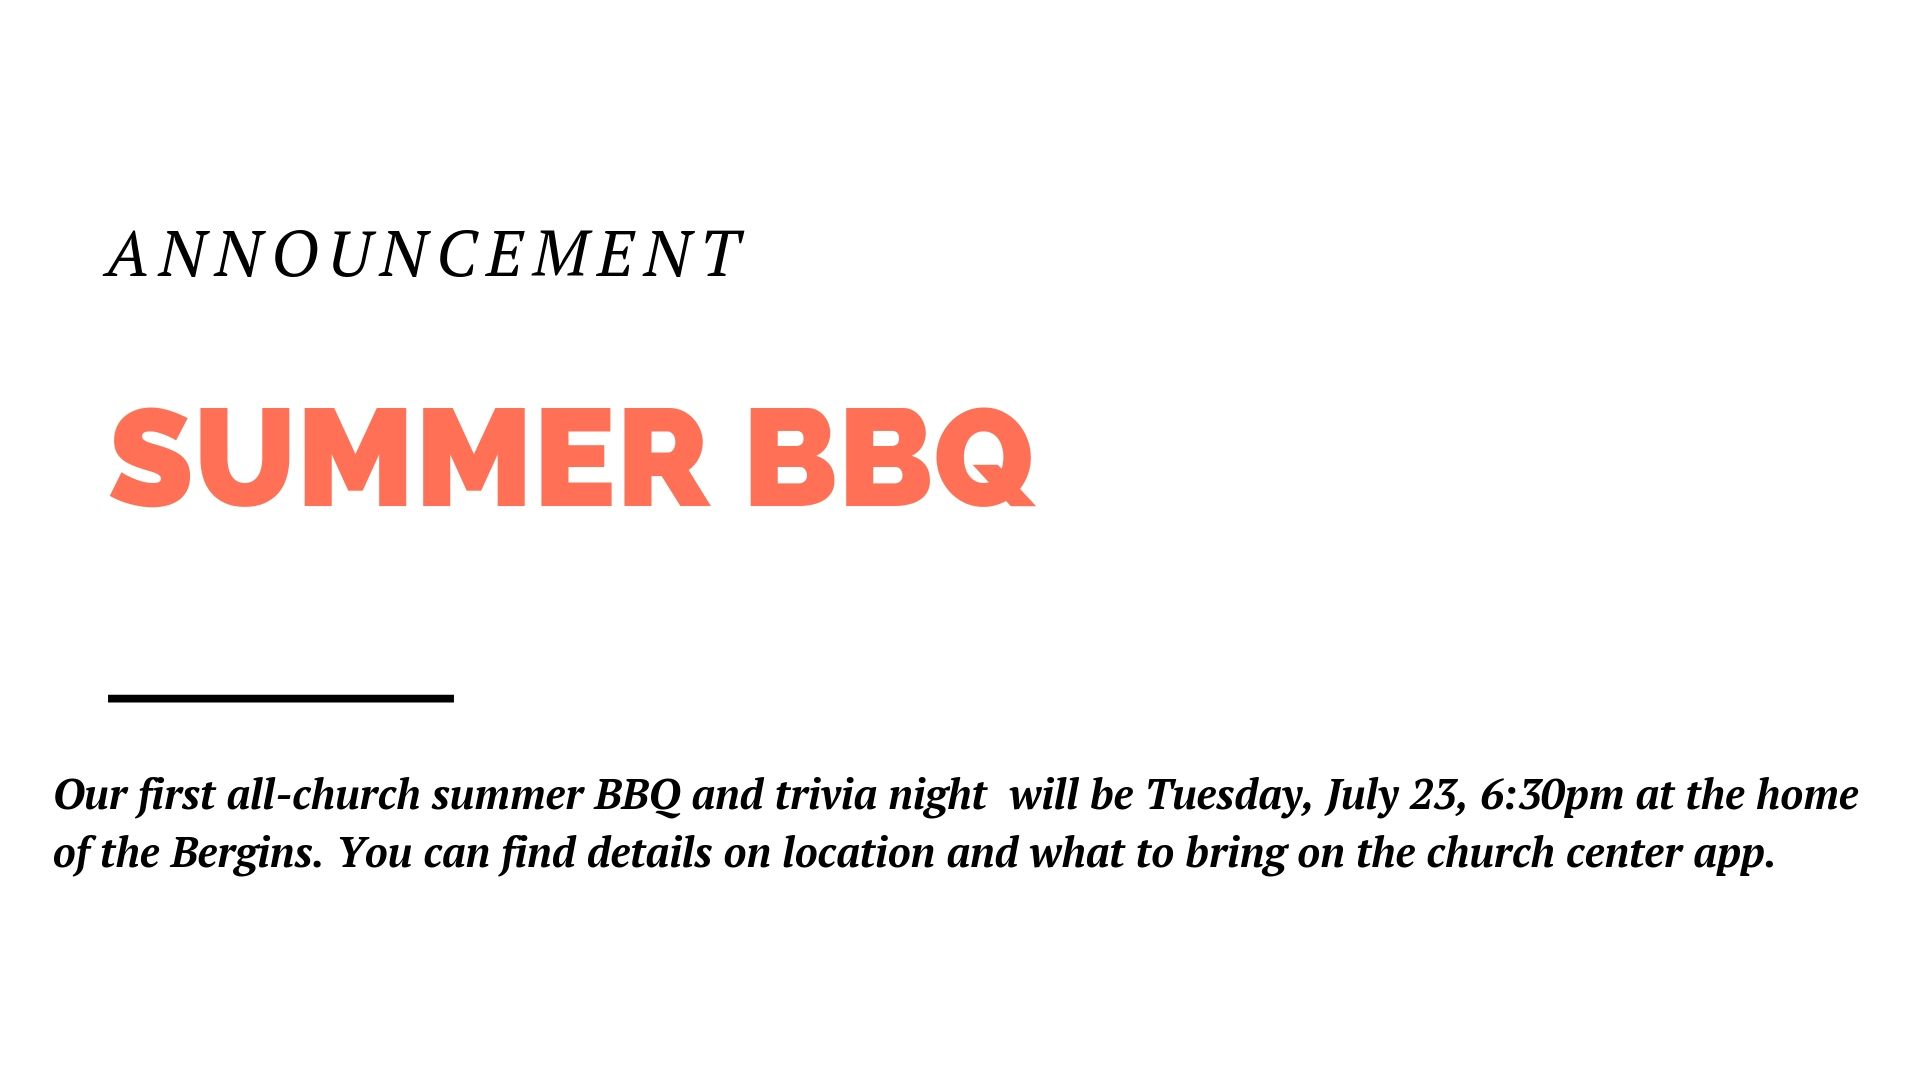 Our first all-church summer BBQ and trivia night will be Tuesday, July 23, 6:30pm at the home of the Bergins. You can find details on location and what to bring on the church center app. And please also RSVP on the church center app so we know how much meat to buy.